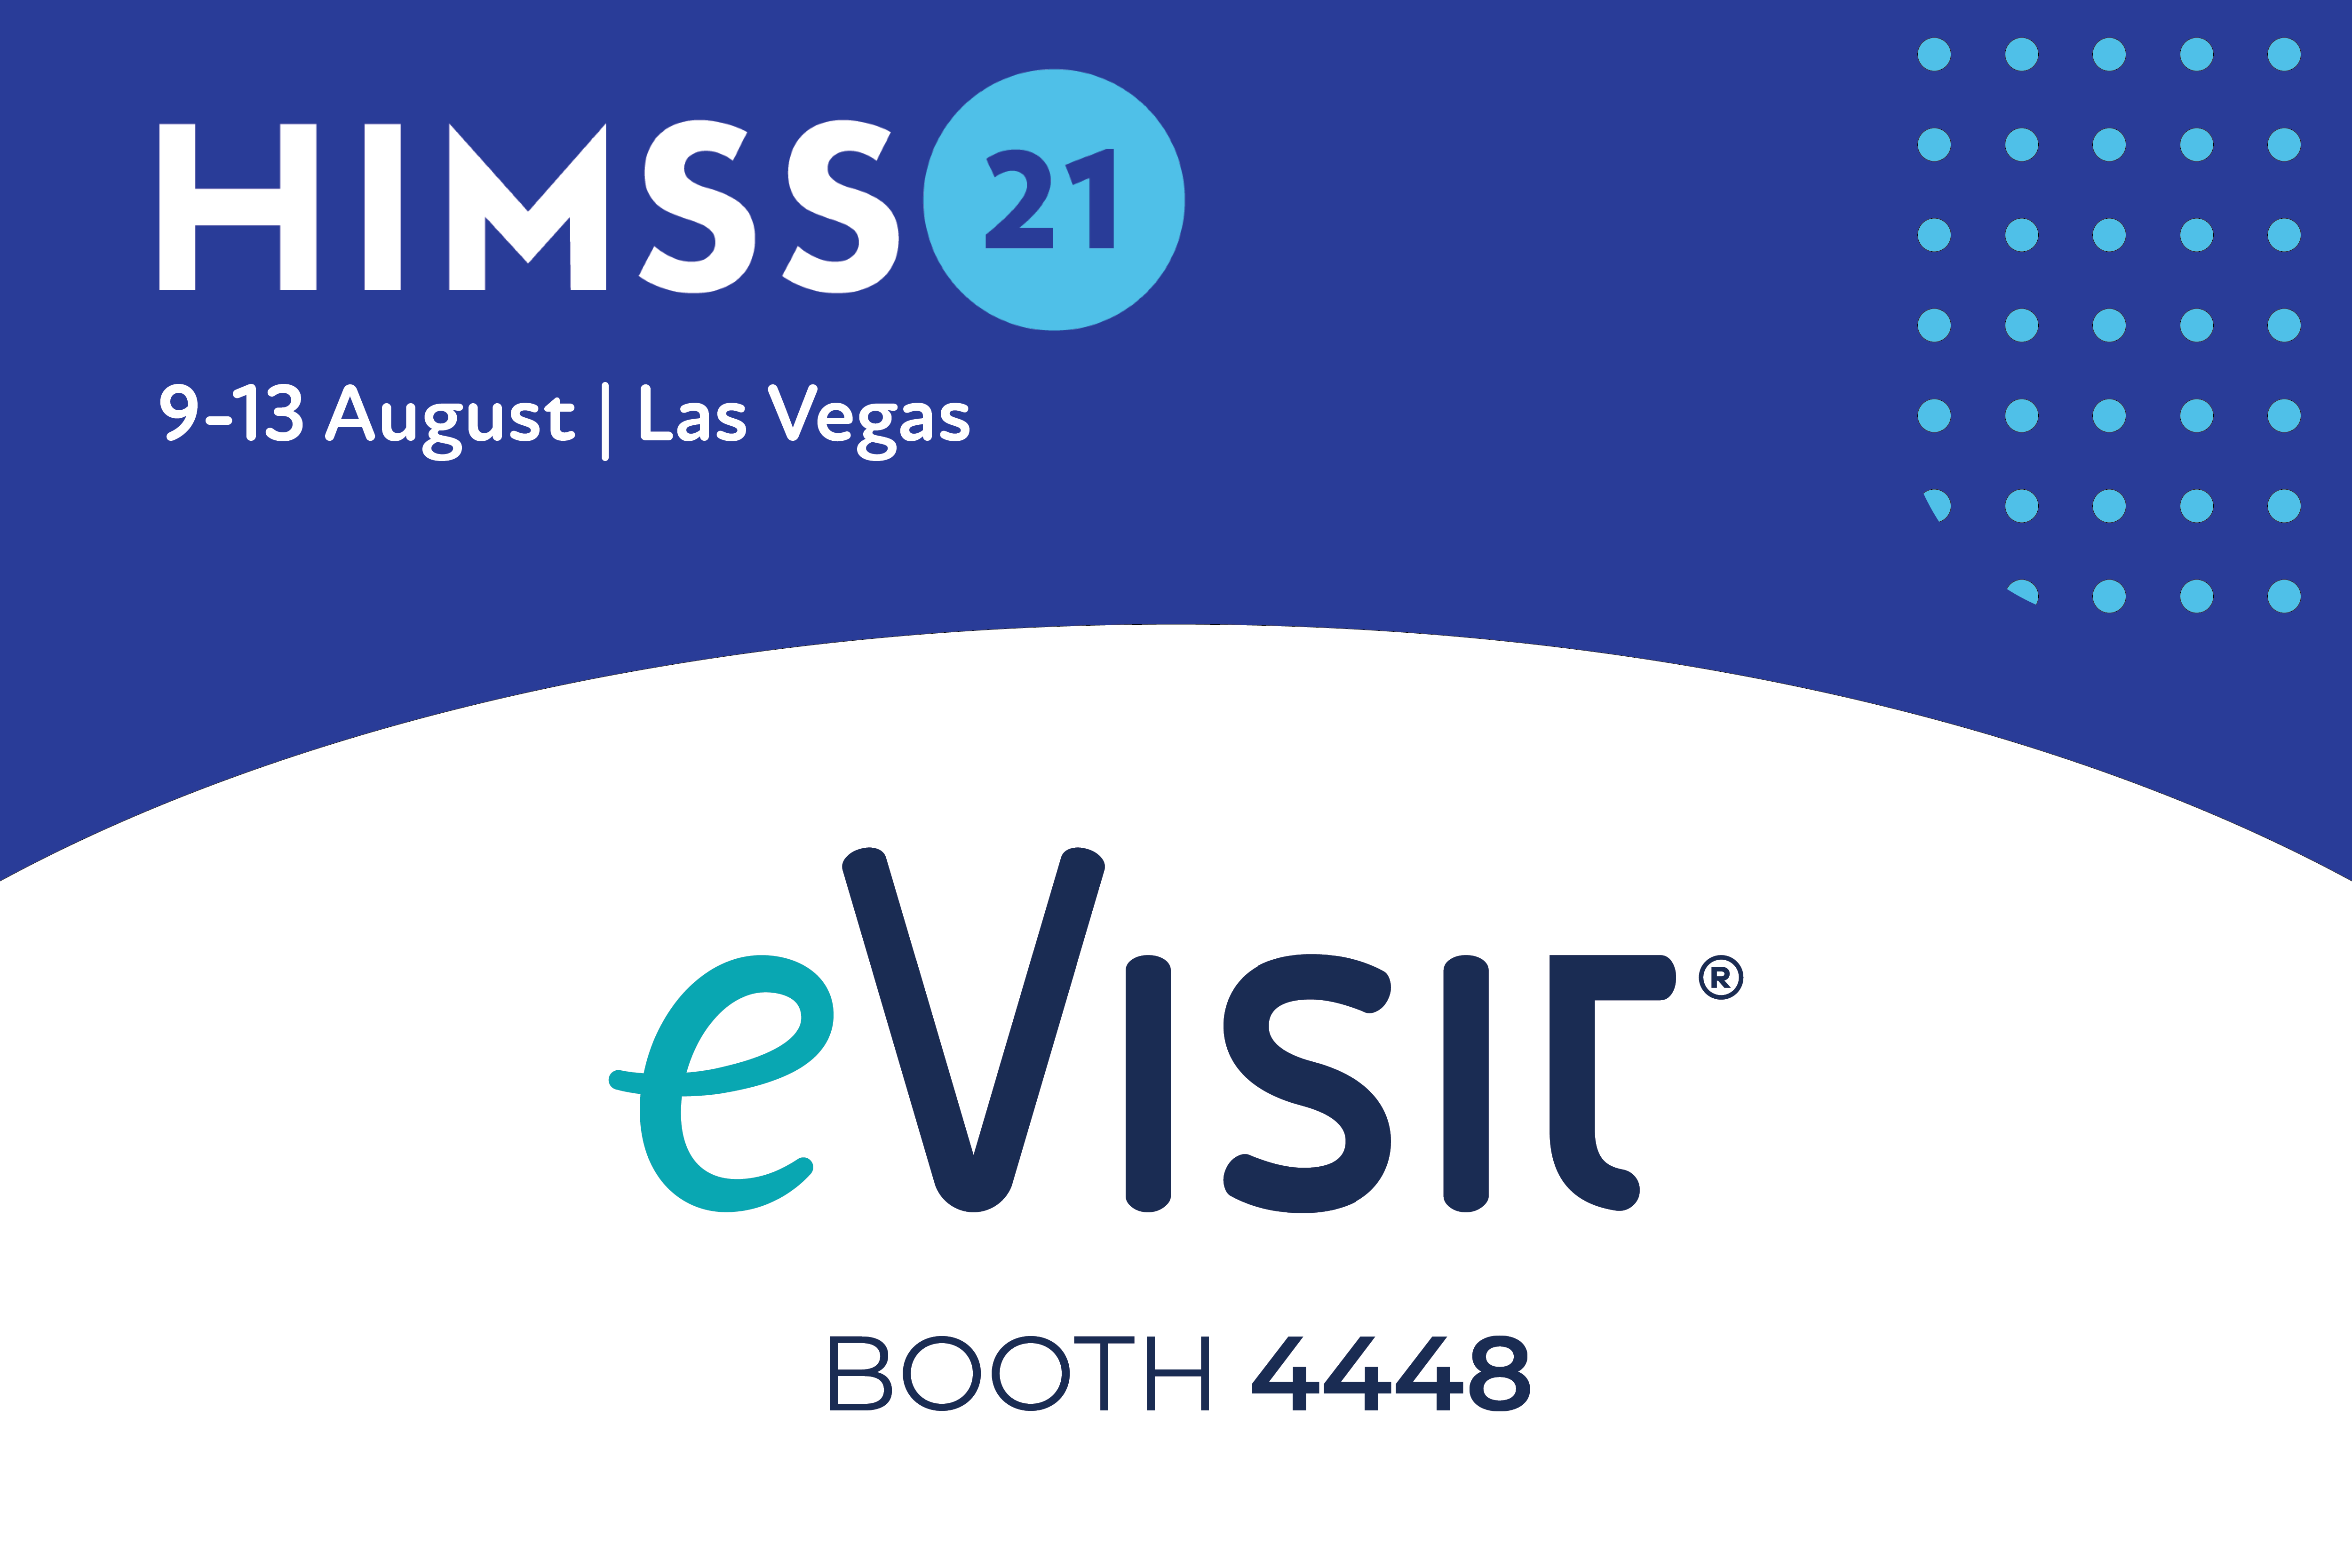 This is the HIMSS2021 event logo with eVisit's logo and the booth number 4448